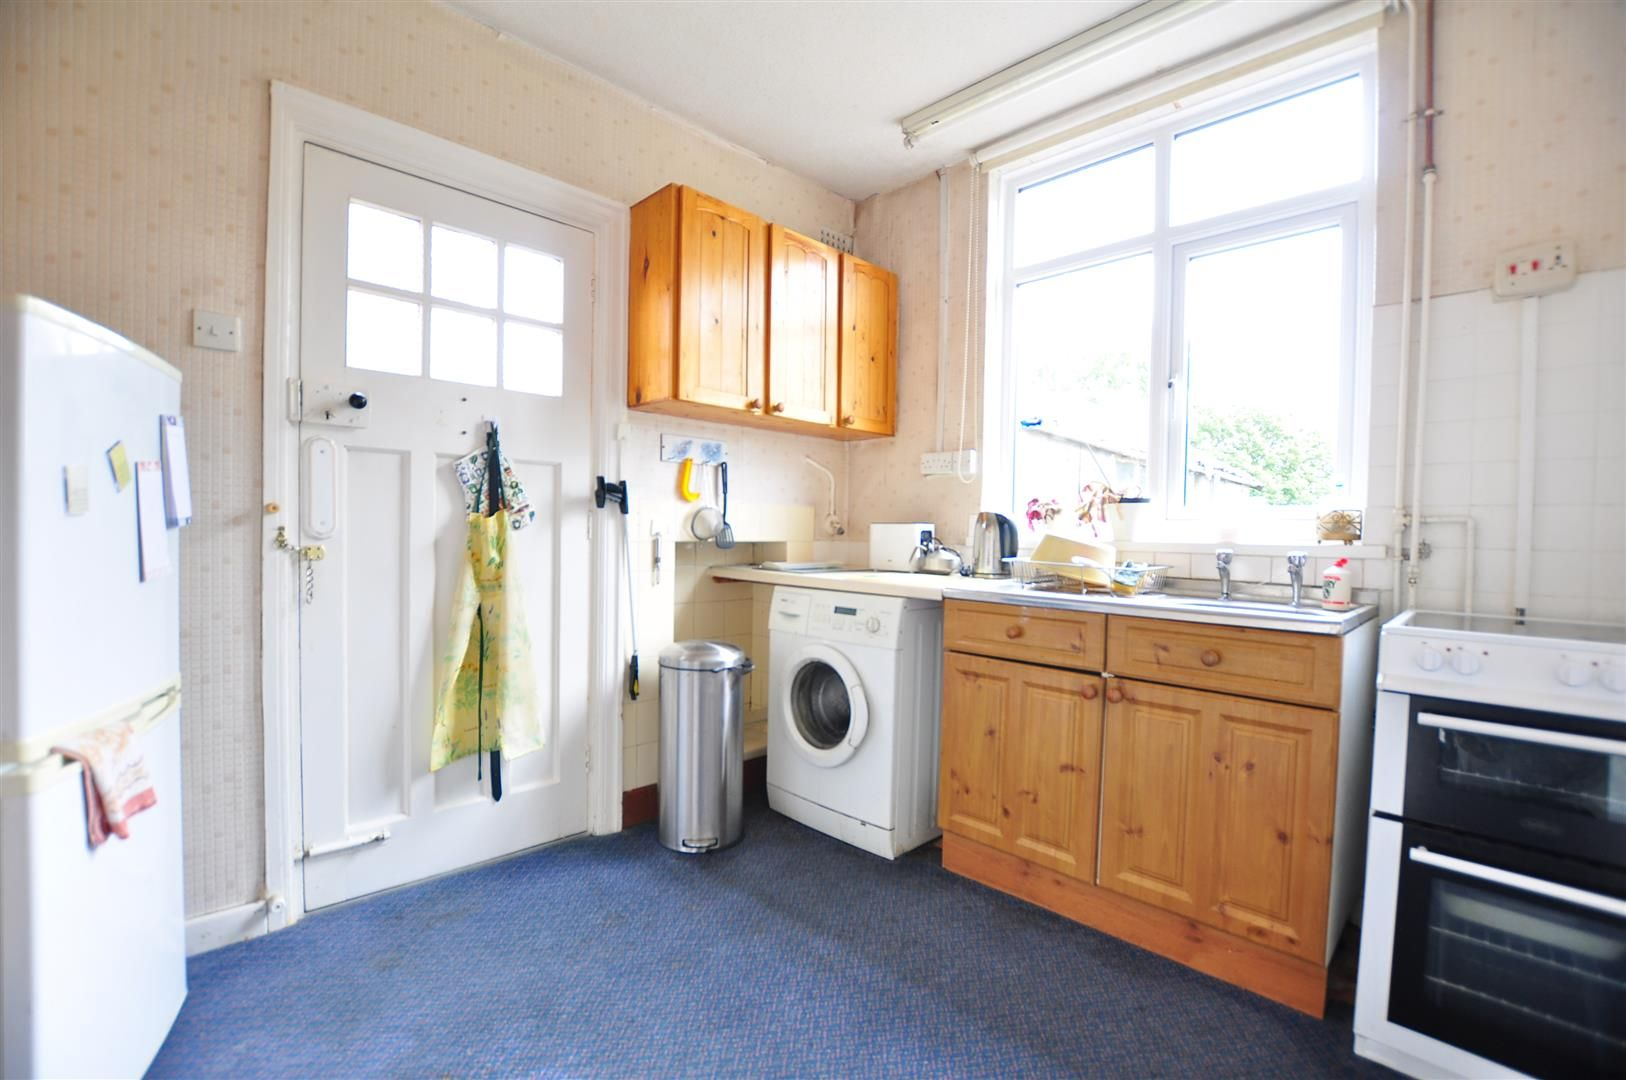 3 bed detached for sale 5